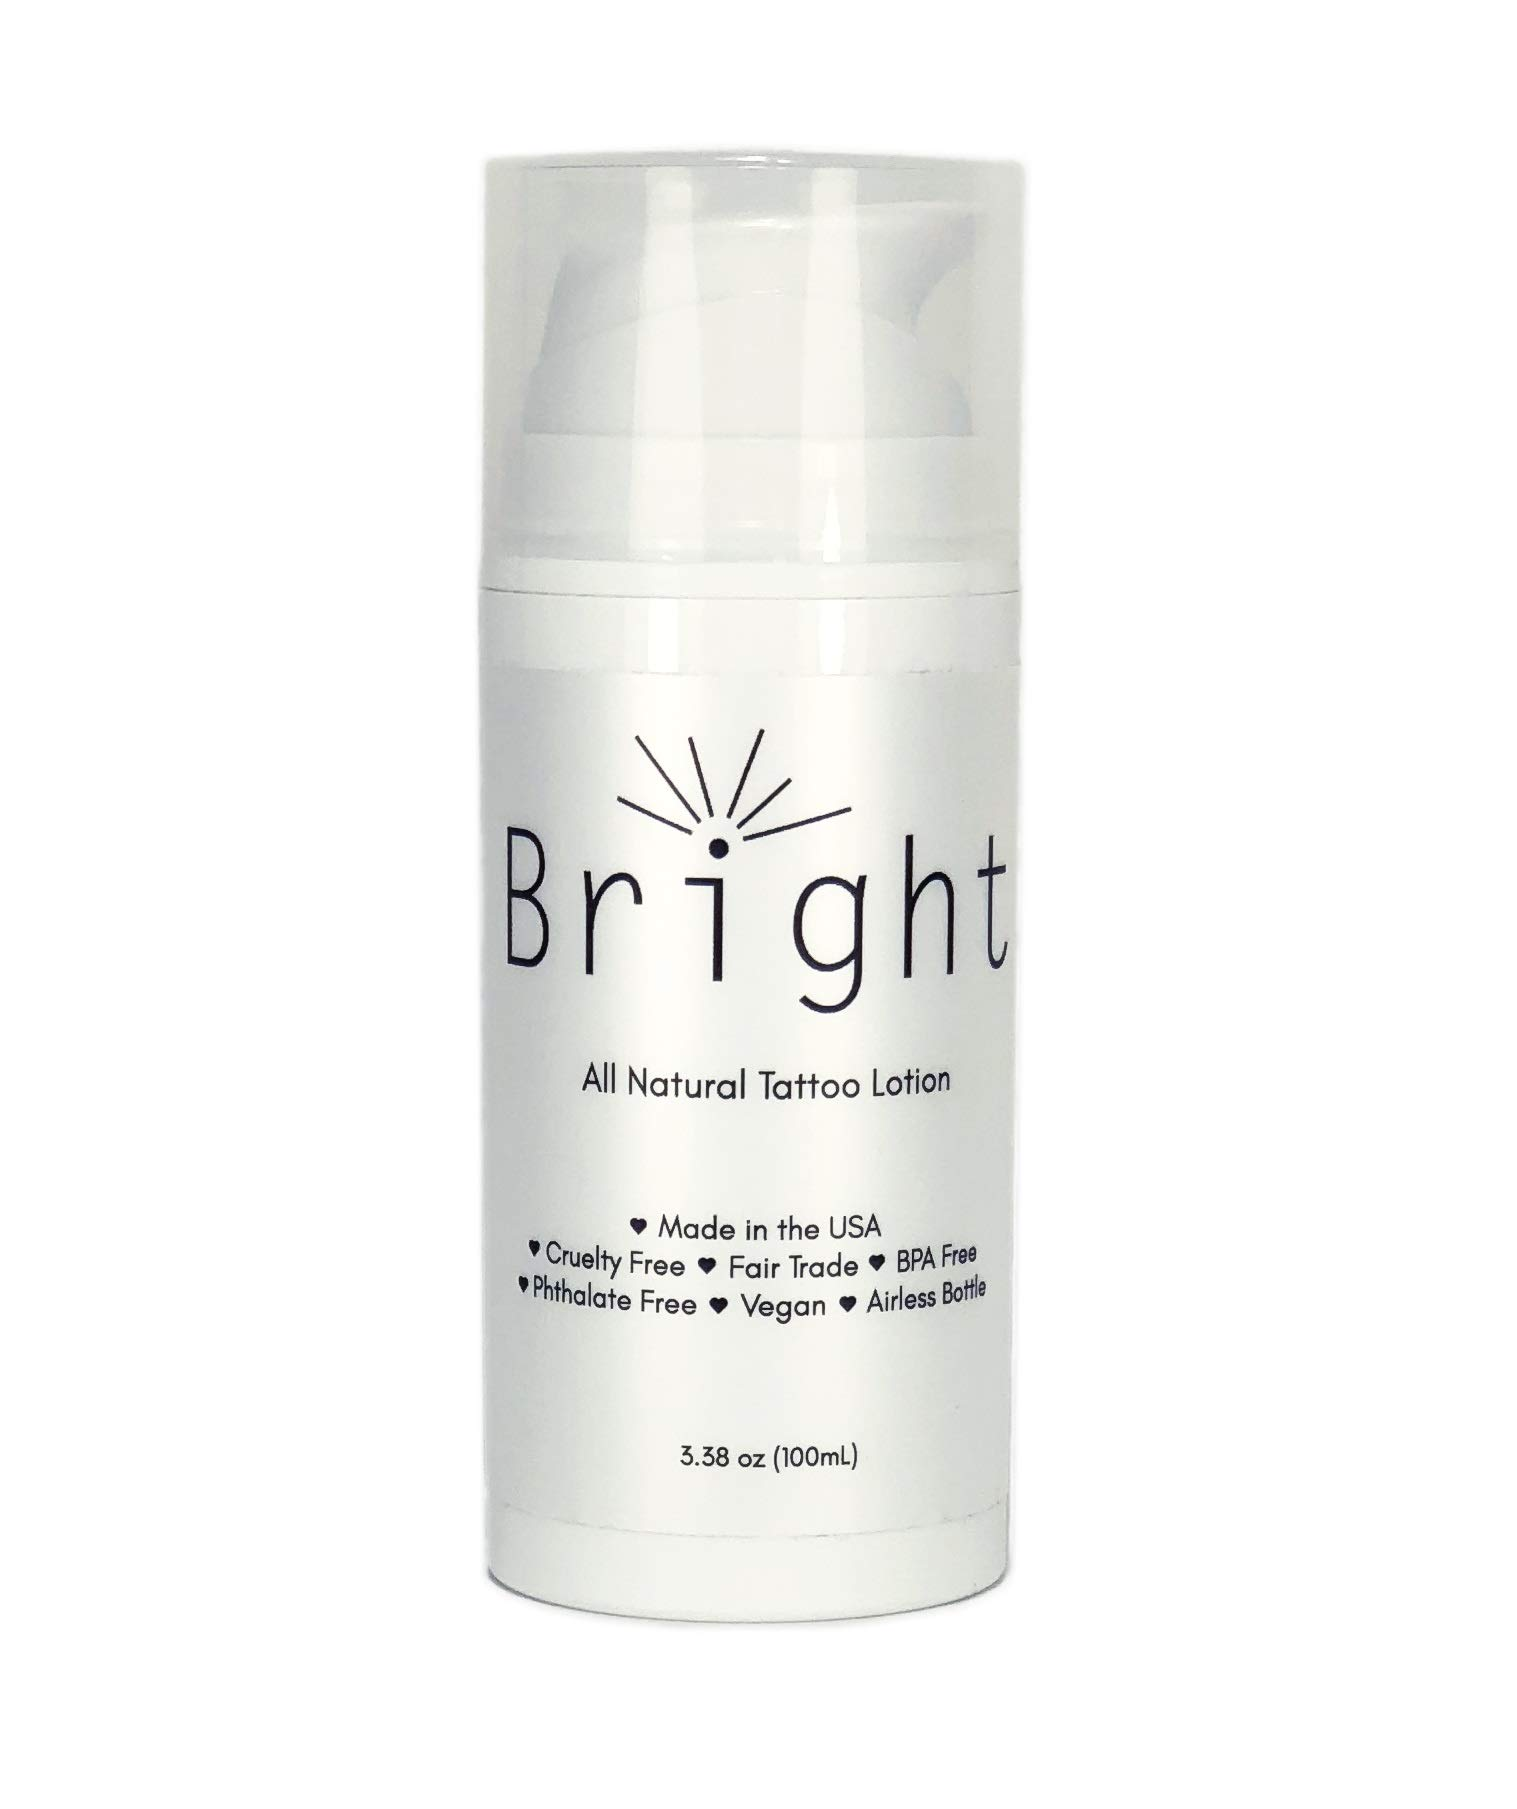 Bright Aftercare All Natural Tattoo & Permanent Cosmetics and Microblading Lotion and Moisturizer Product, Water Based for Tattoo Protectant and Enhancing Aftercare, Vegan Friendly and Cruelty Free by Bright Aftercare